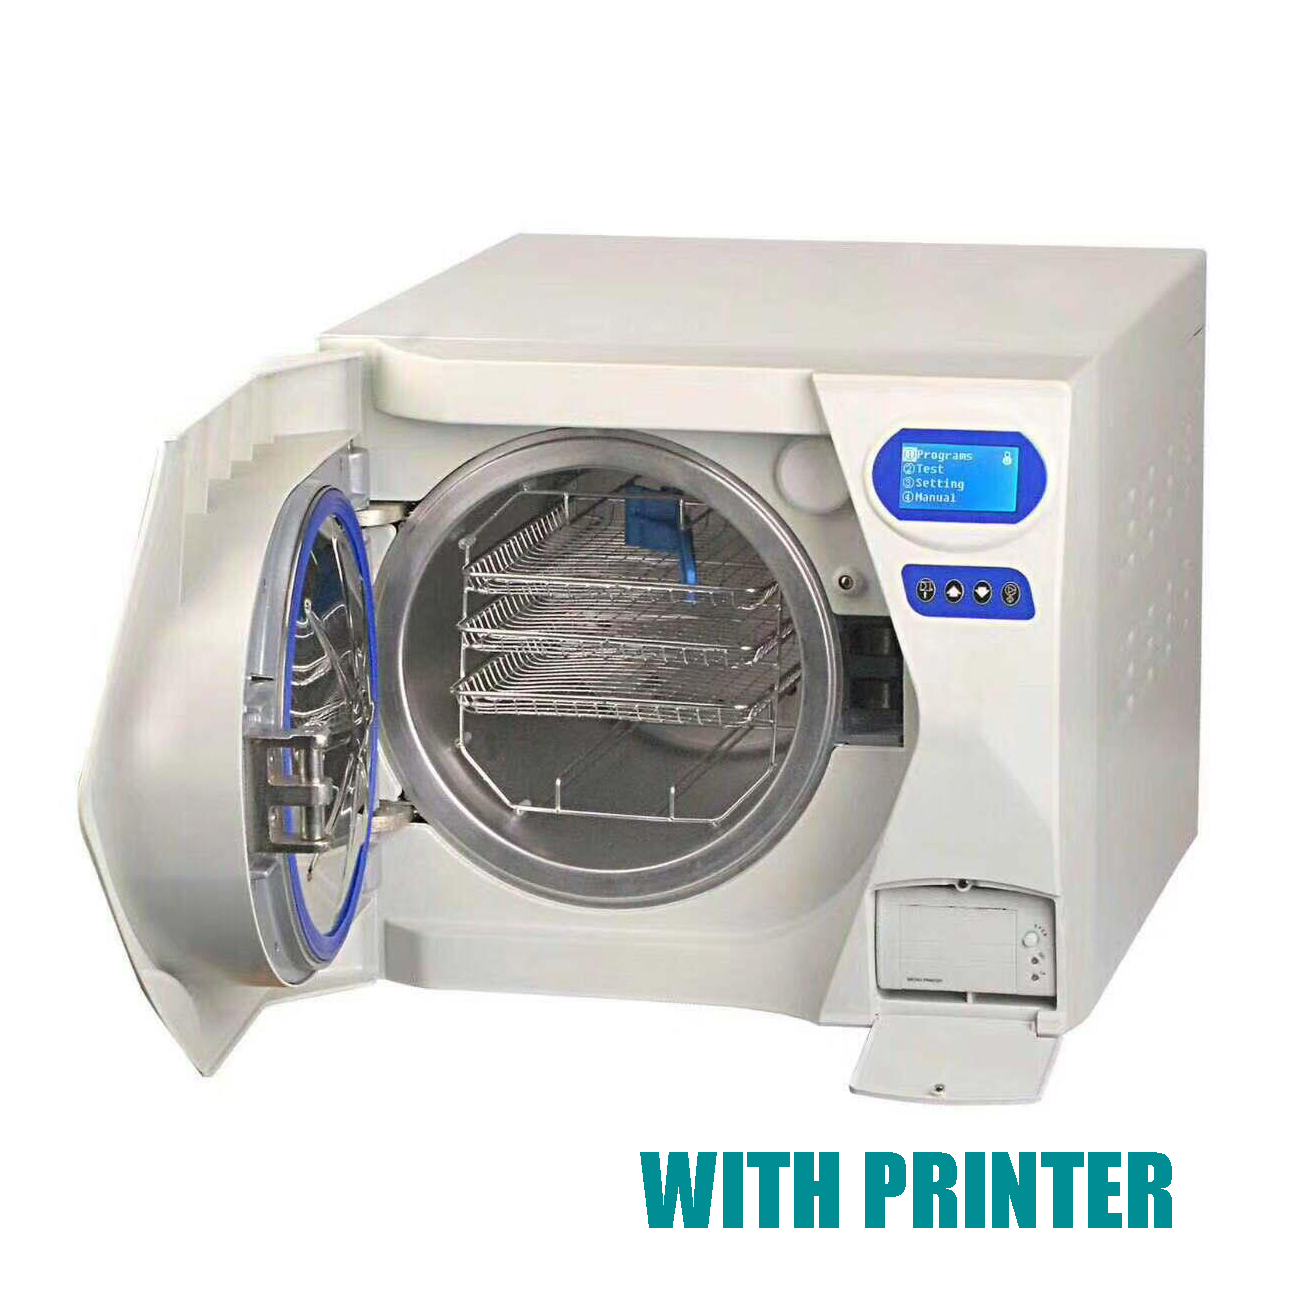 17L Class N Autoclave Sterilizer Vacuum Steam with Printer